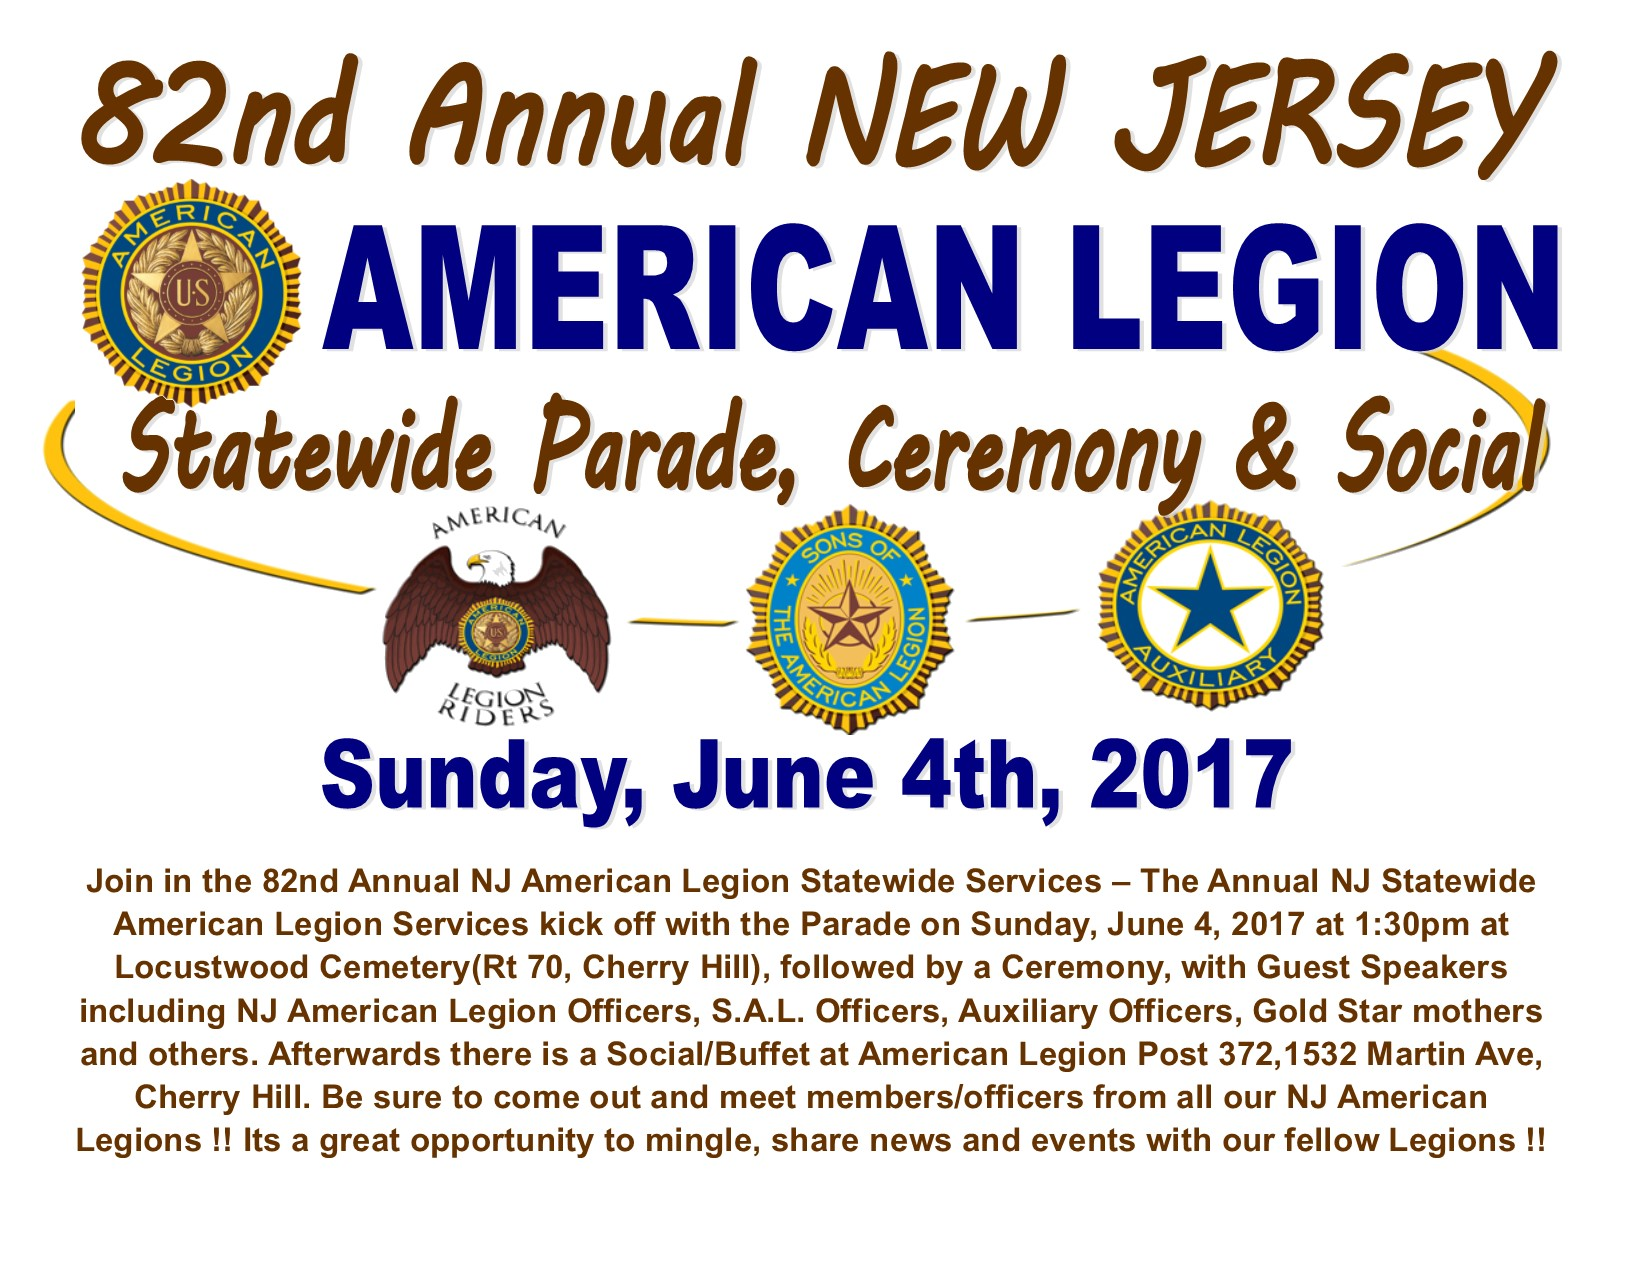 NJ American Legions - 82nd Statewide Service, Parade, Social / Buffet